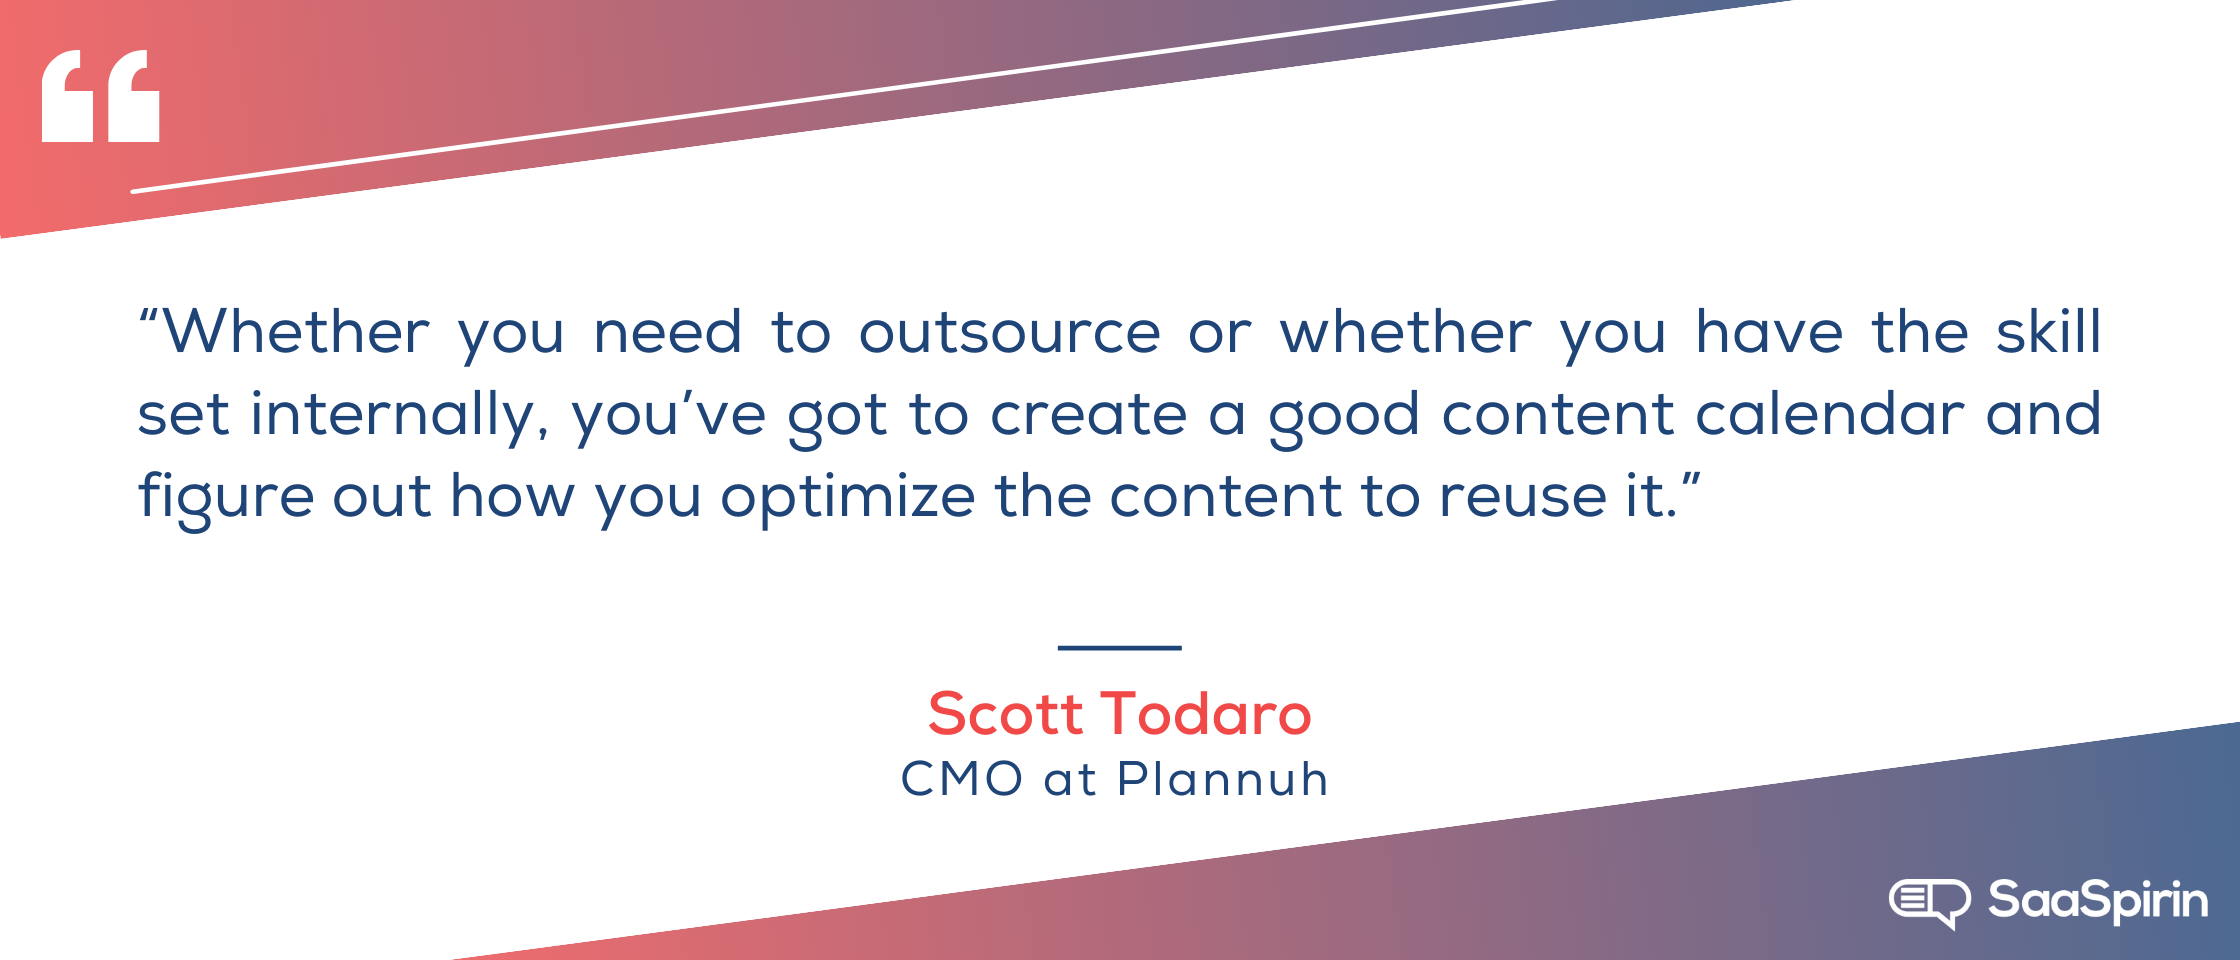 Whether-you-need-to-outsource-or-whether-you-have-the-skill-set-internally,-youve-got-to-create-a-good-content-calendar-and-figure-out-how-you-optimize-the-content-to-reuse-it.png